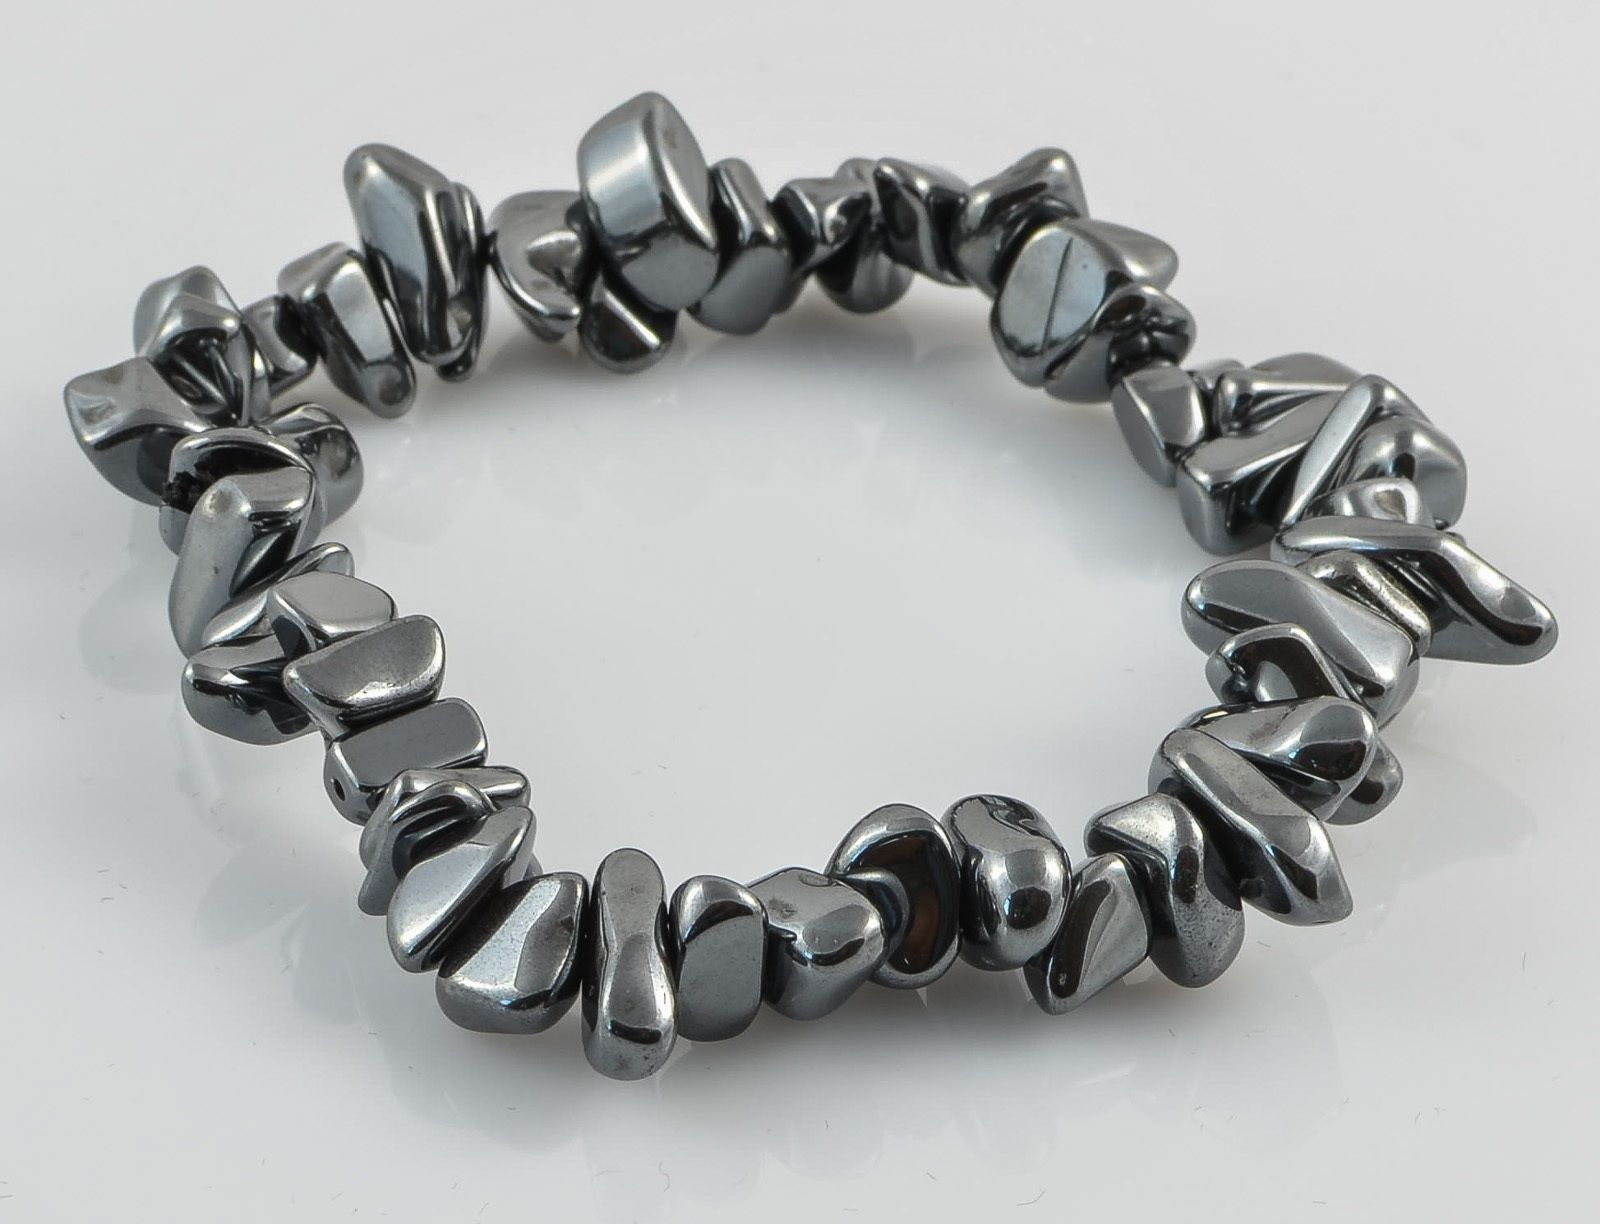 Charmed Hematite Protection Bracelet - price includes postage